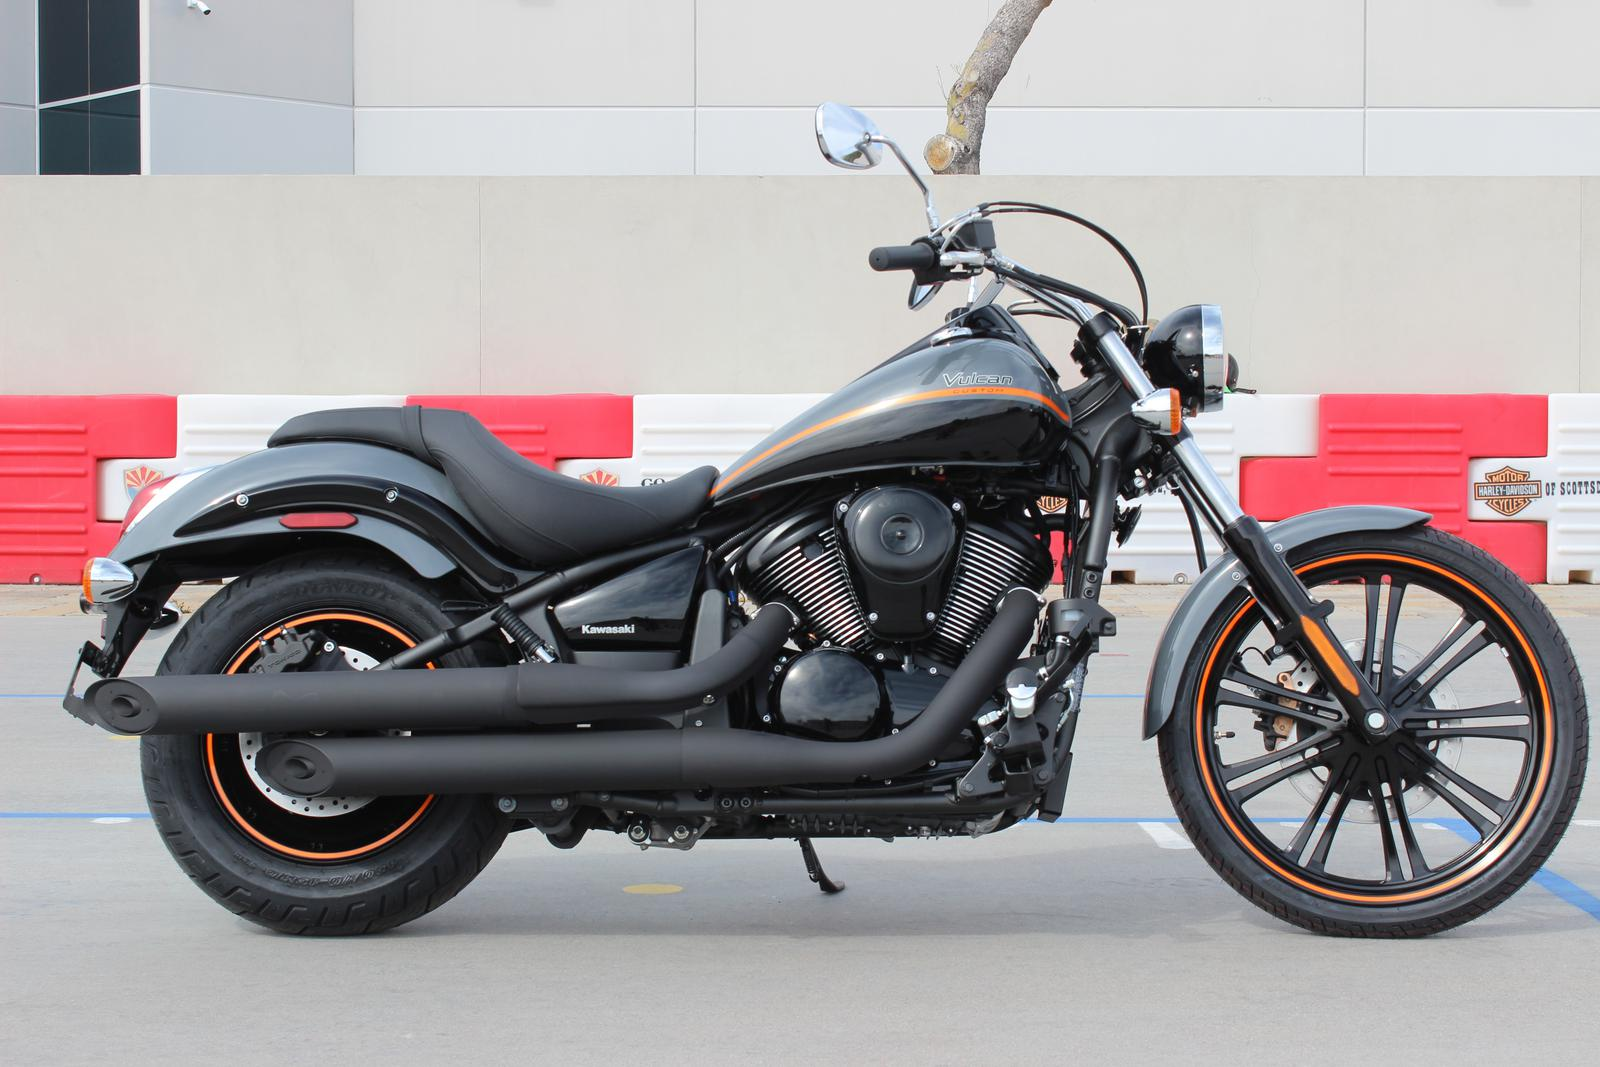 2019 Kawasaki Vulcan Classic For Sale In Scottsdale Az Go Az